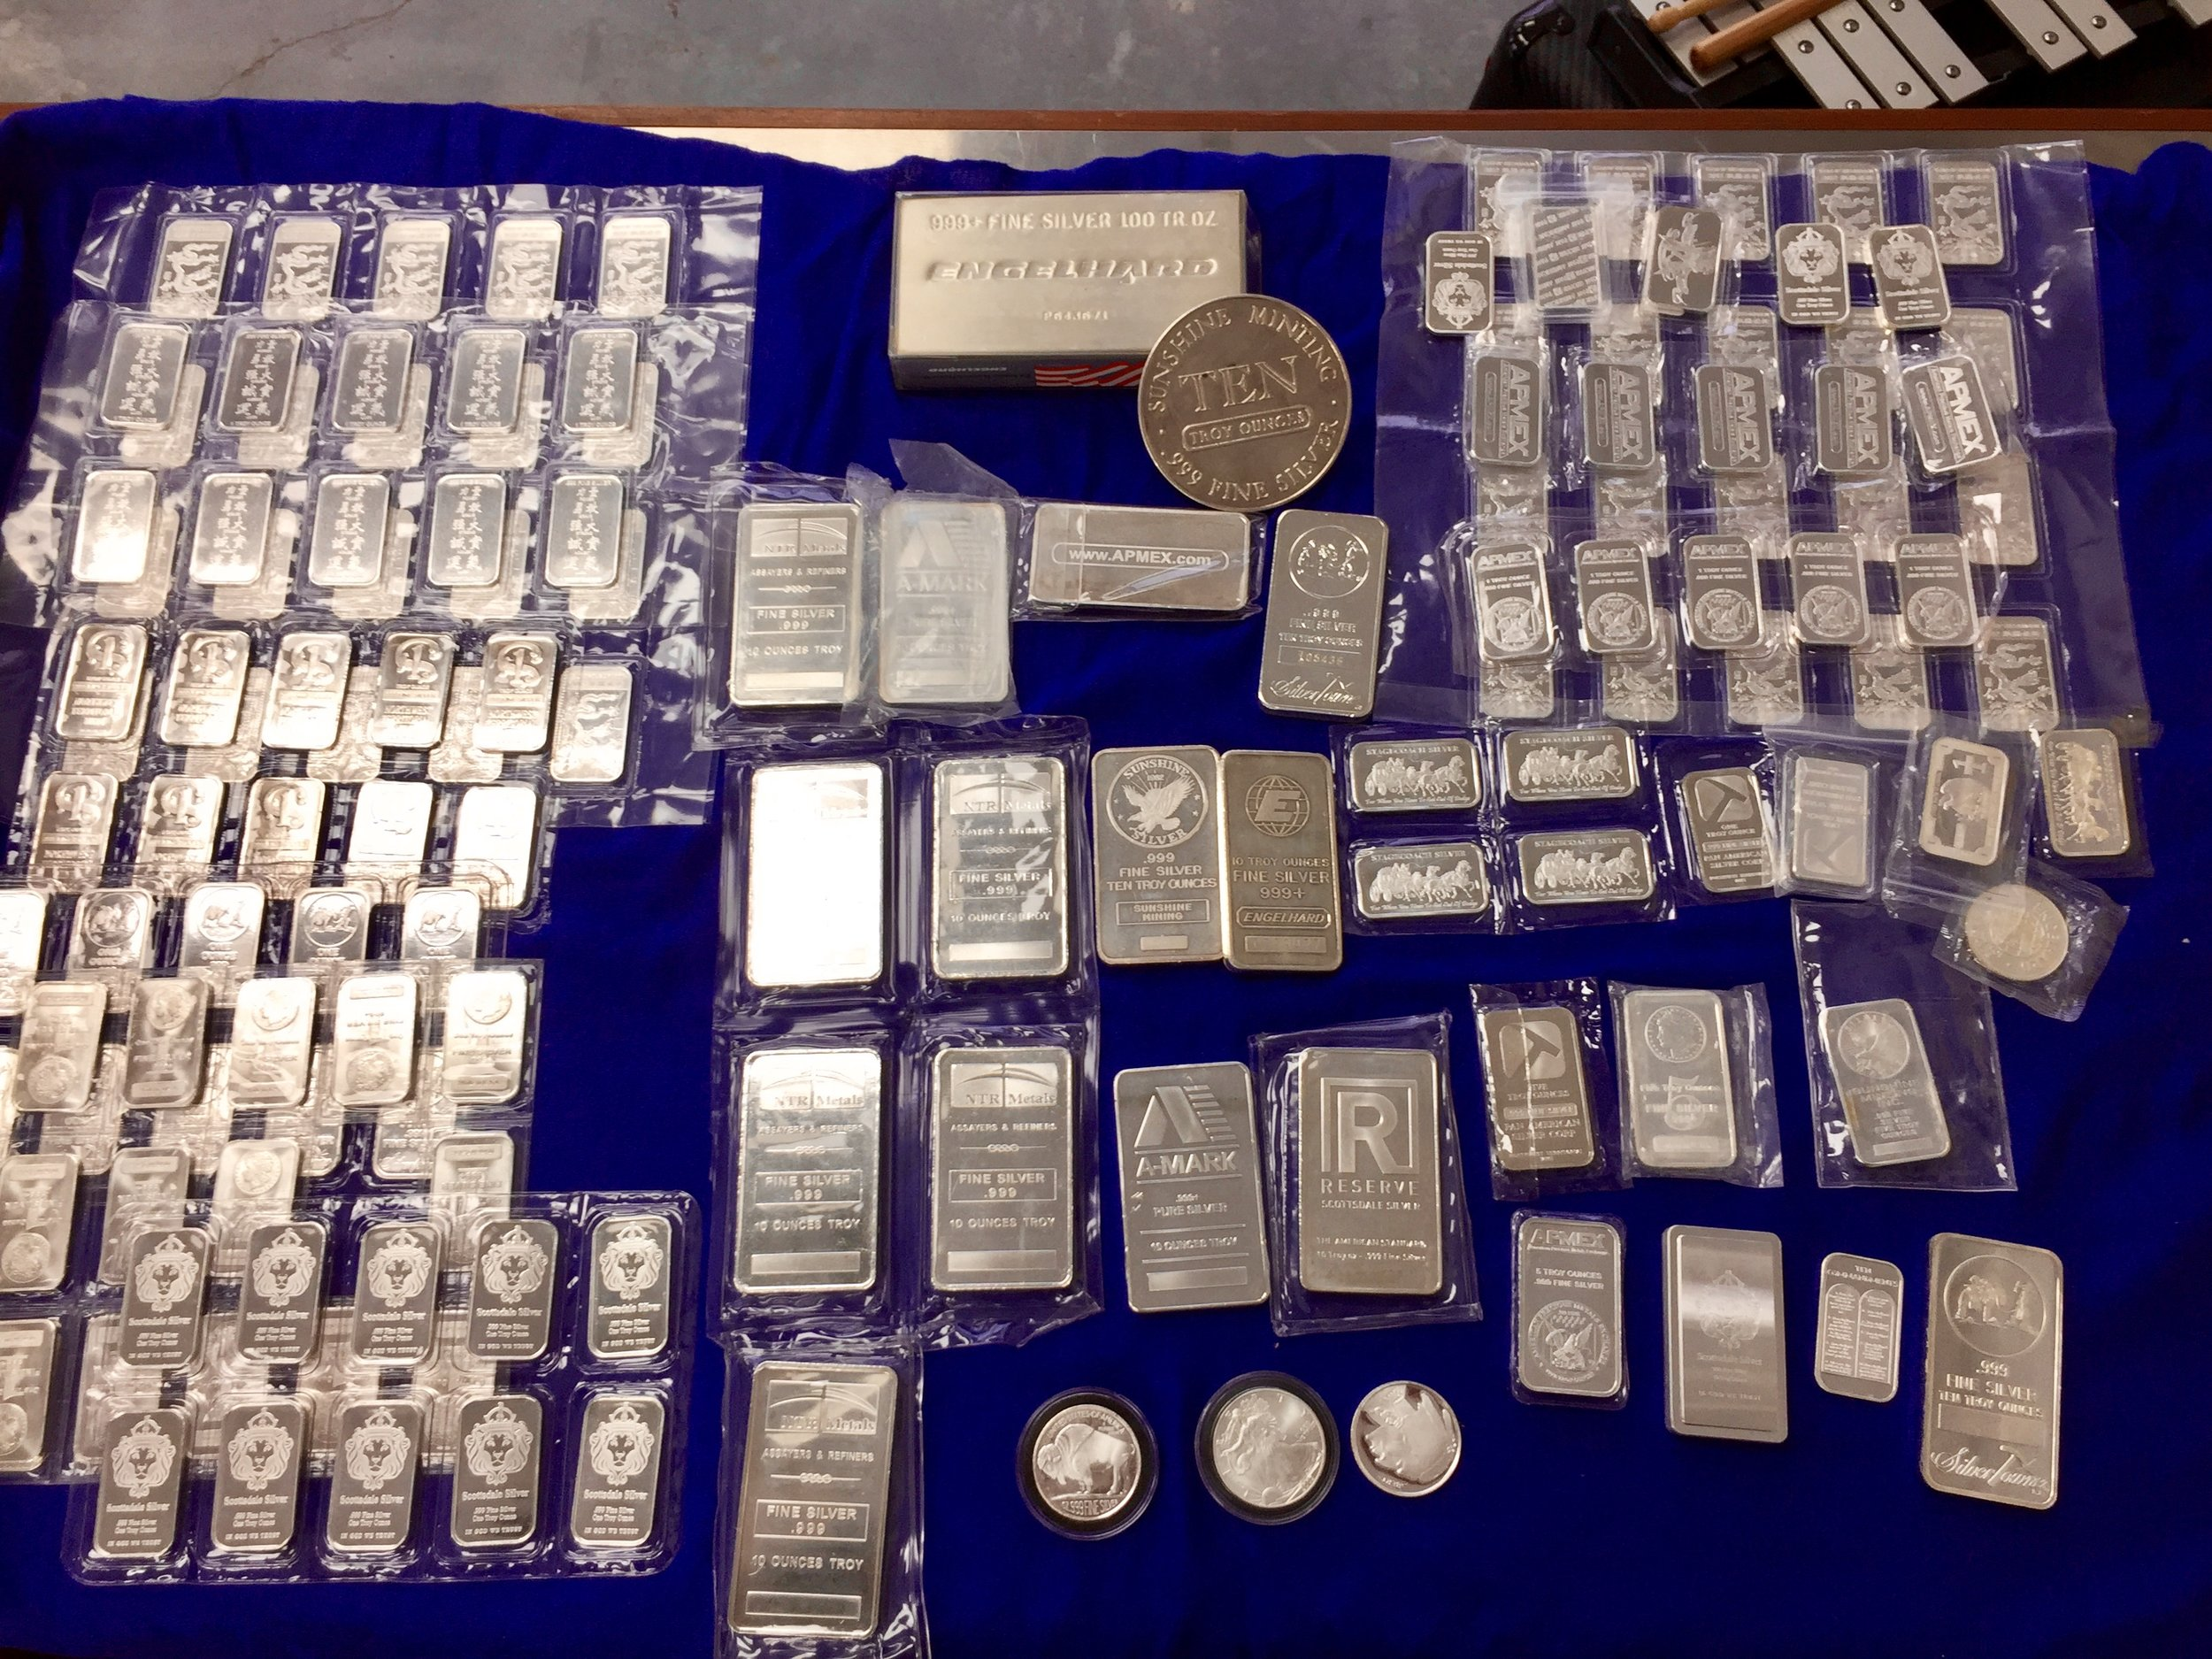 We have a huge selection of silver bullion, ingots, rounds and strikes.  All priced lower that any other dealer.